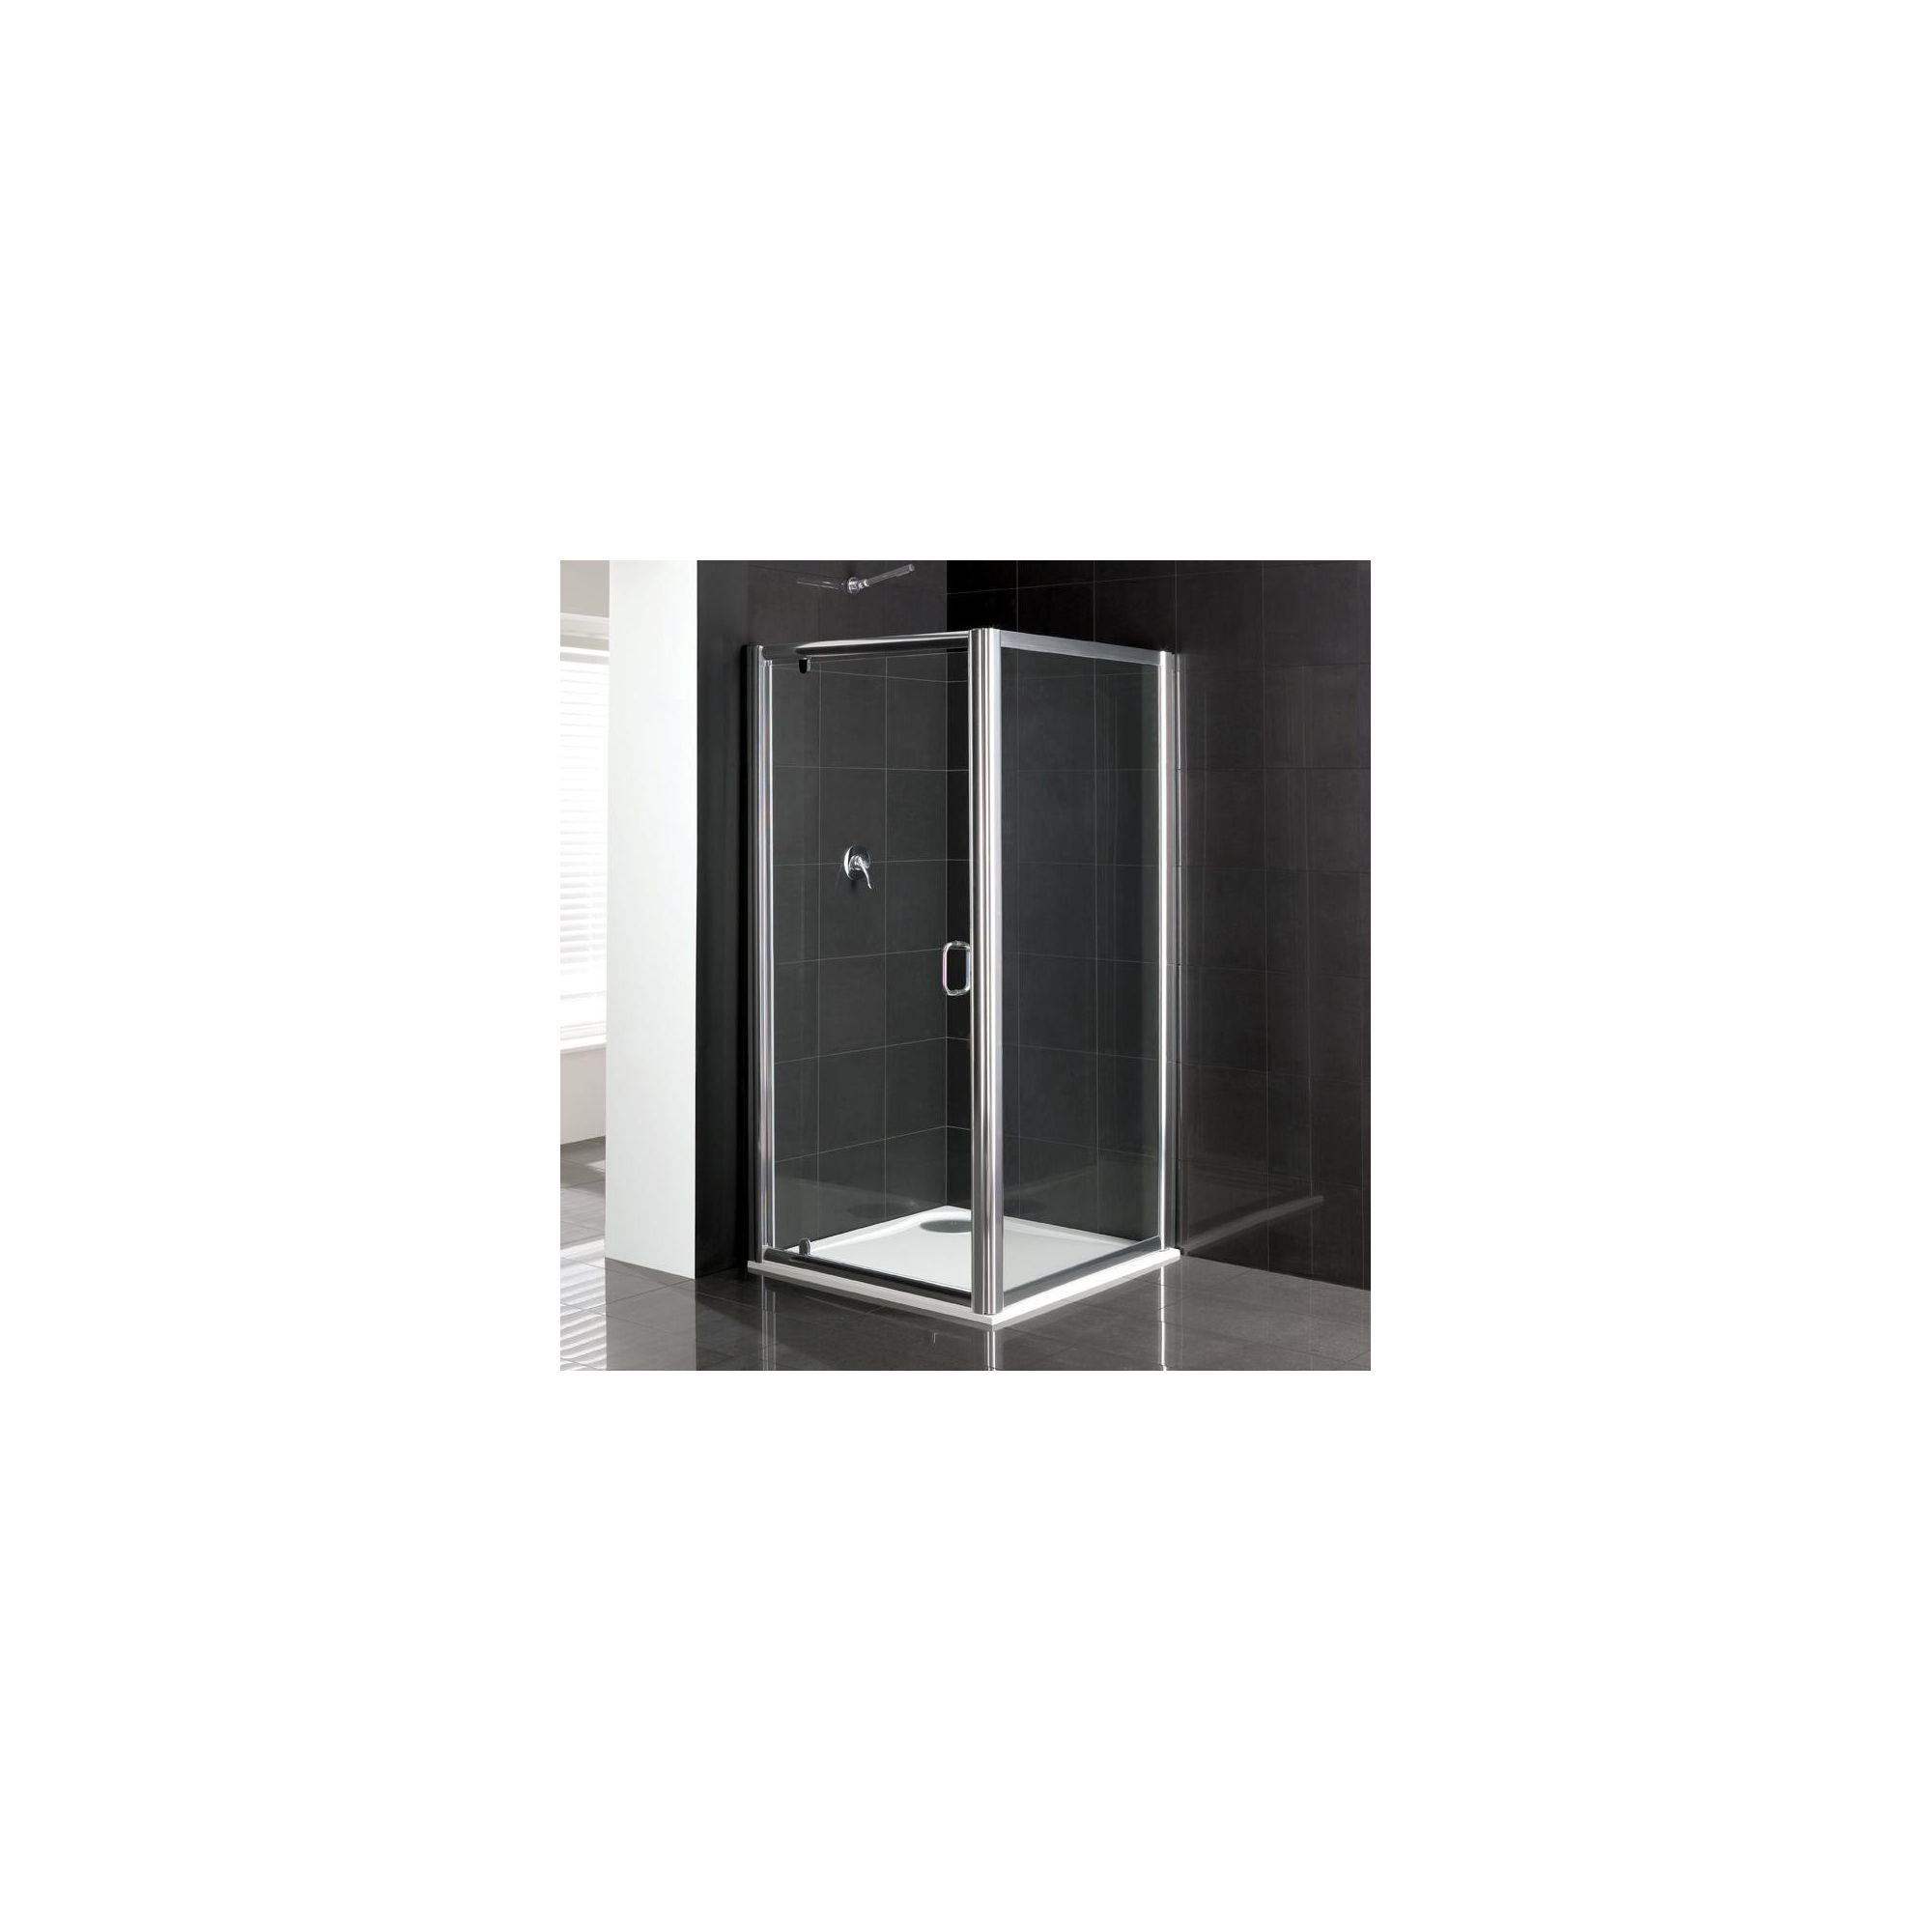 Duchy Elite Silver Pivot Door Shower Enclosure, 1000mm x 1000mm, Standard Tray, 6mm Glass at Tescos Direct